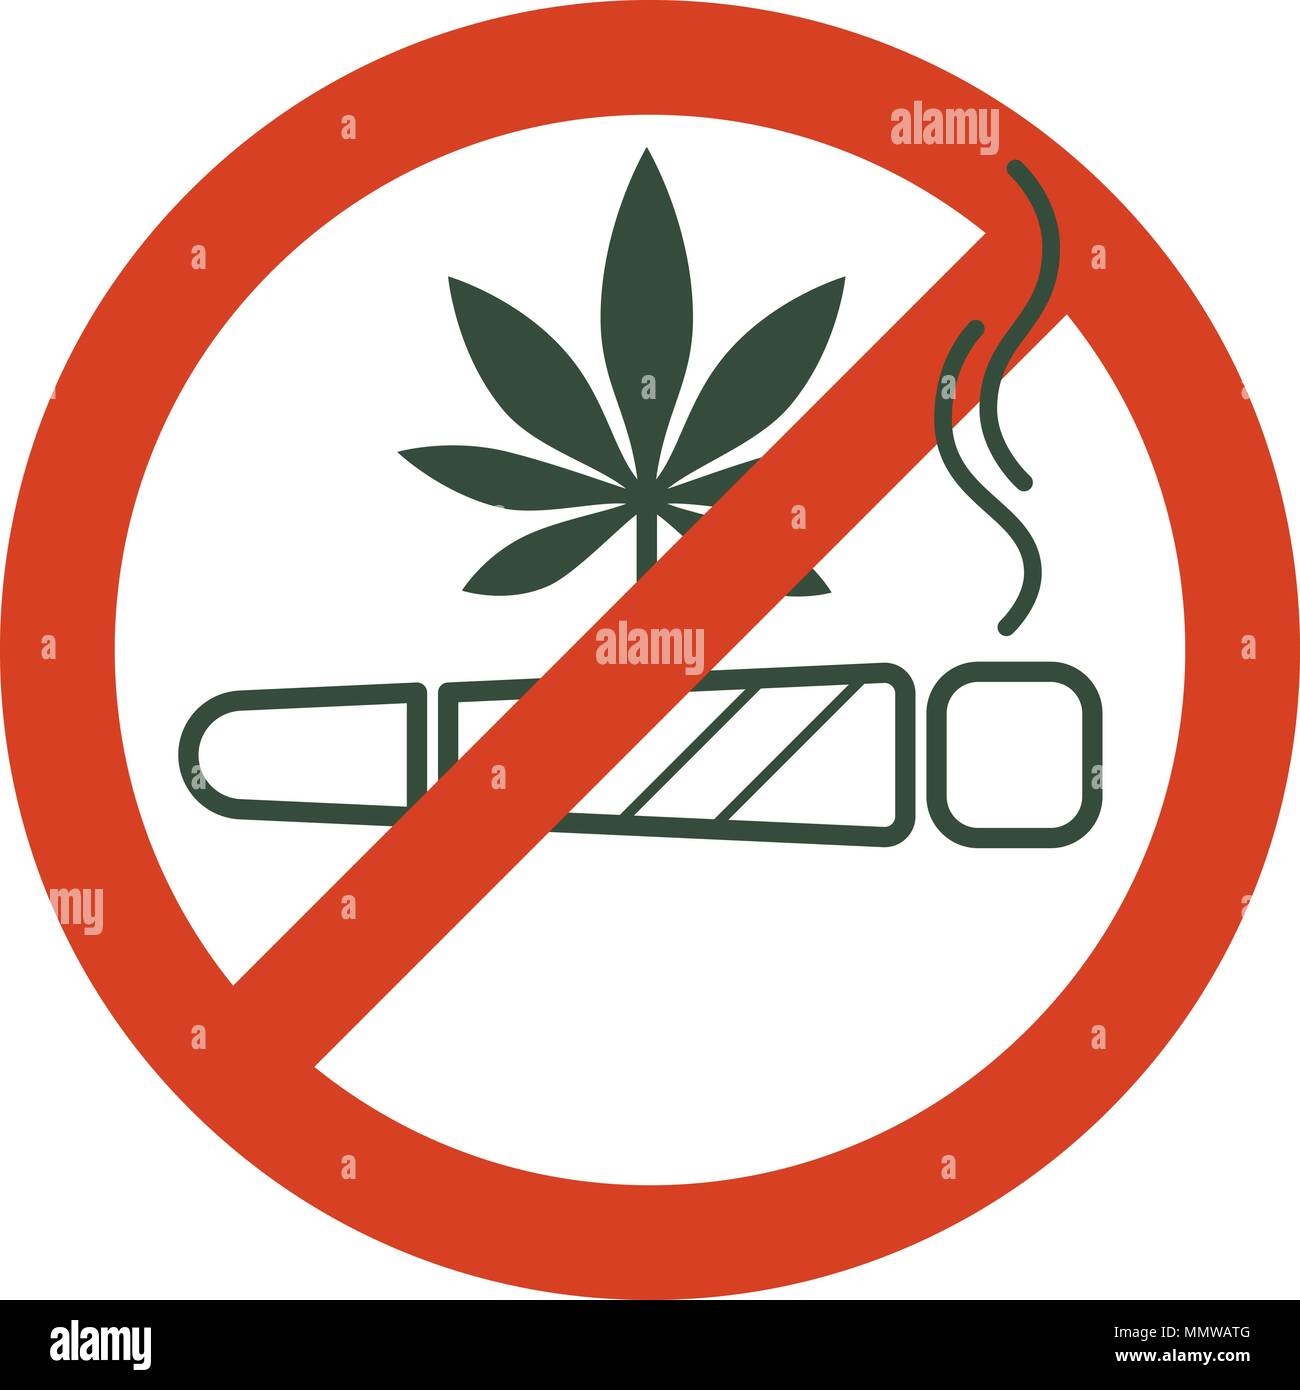 No drugs allowed. Marijuana joint, spliff, with forbidden sign - no drug. Cannabis cigarette icon in prohibition red circle. Anti drugs. Just say no.  - Stock Image